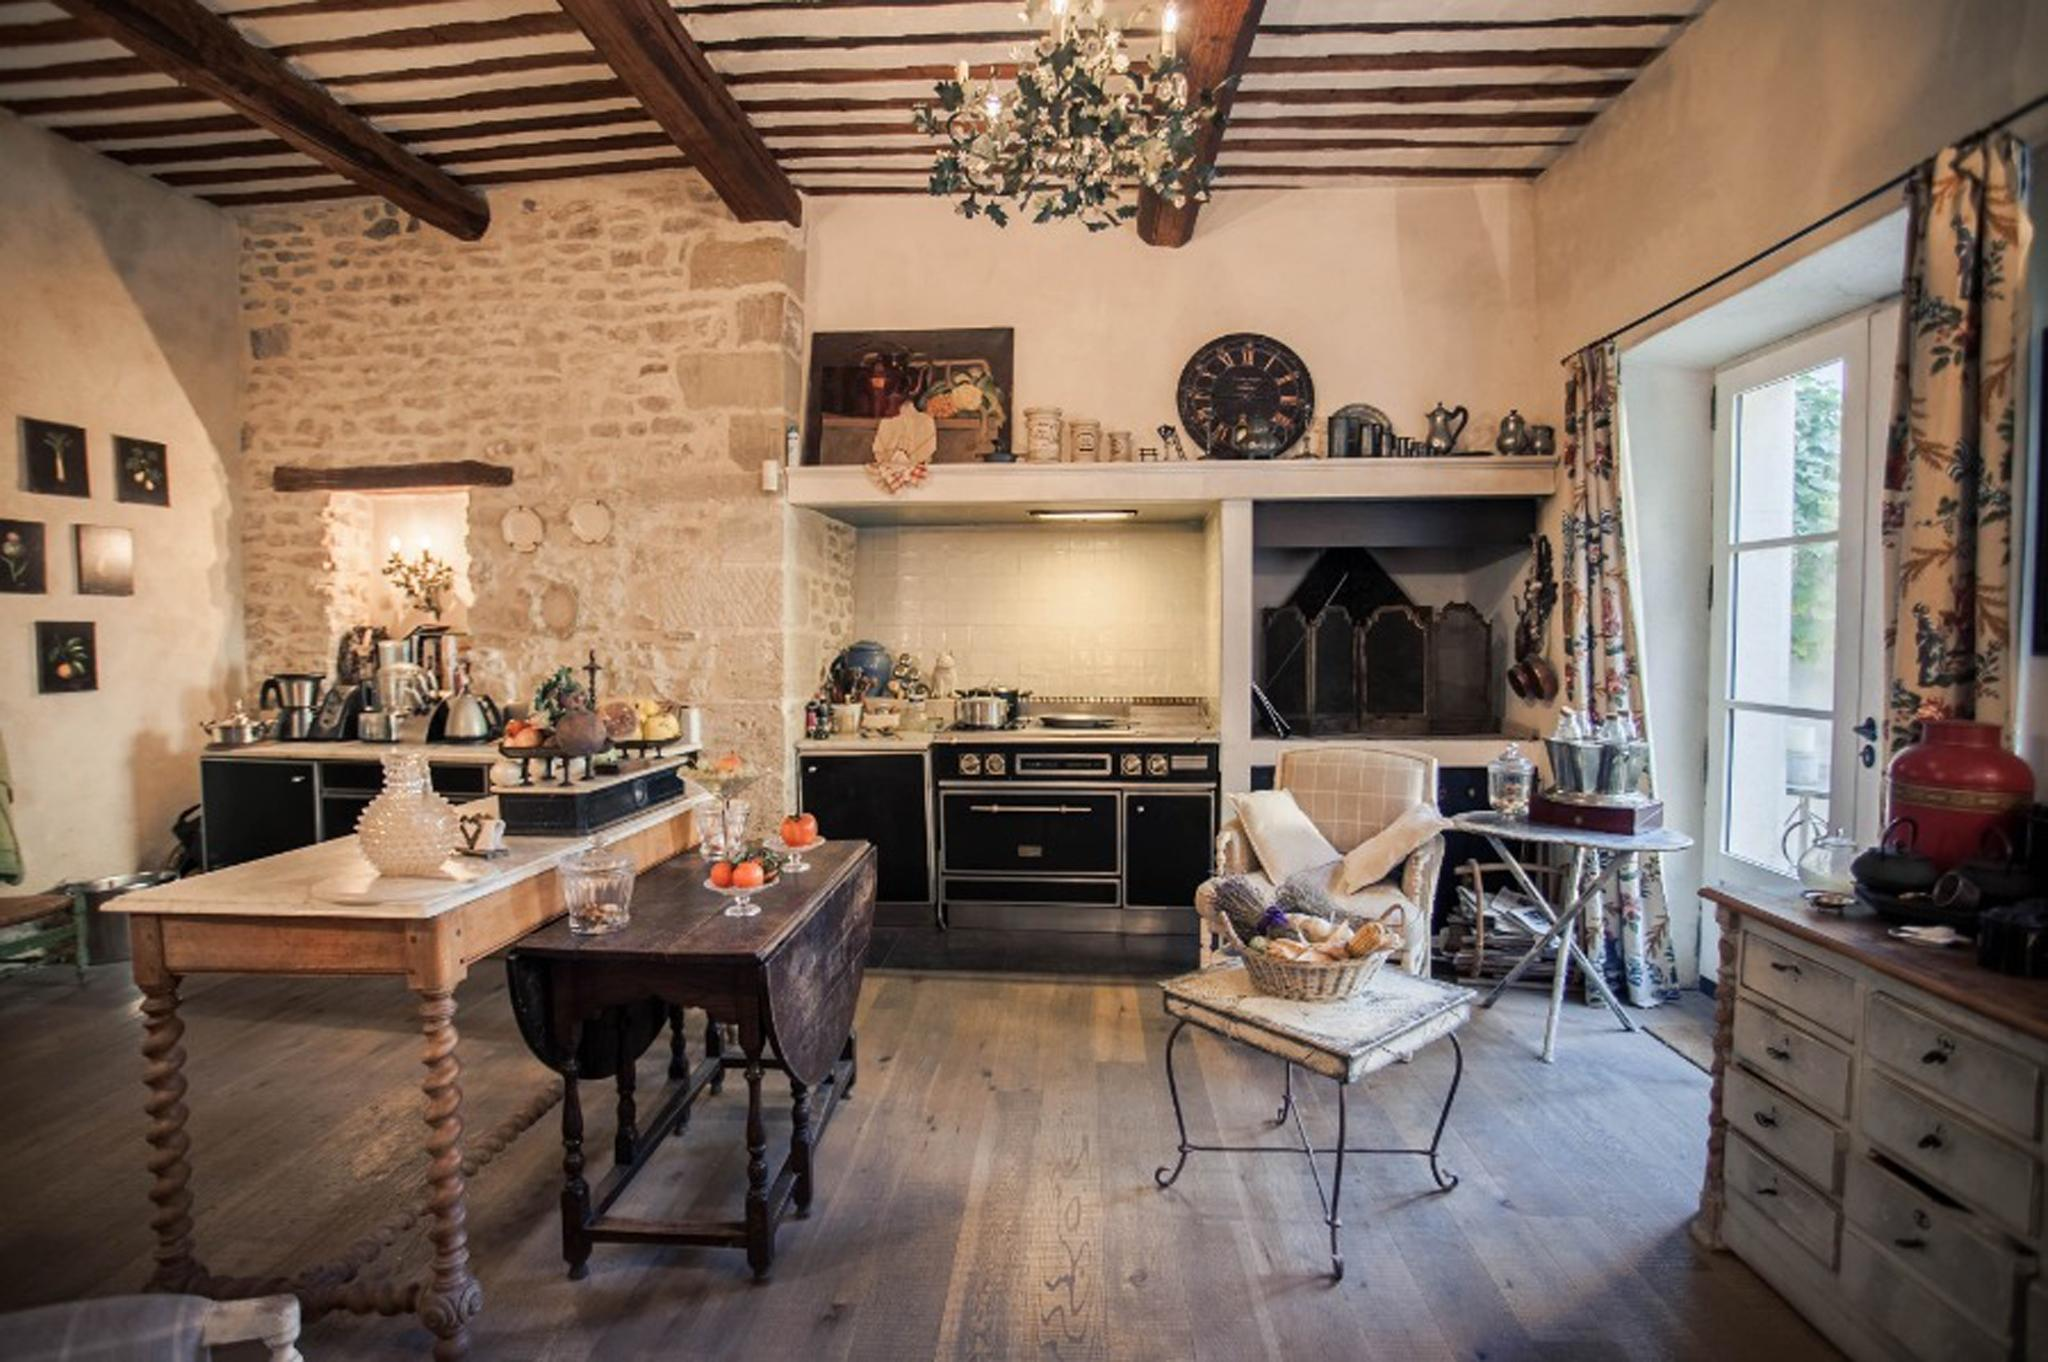 Exceptional Bastide - Sumptuousness And Charm